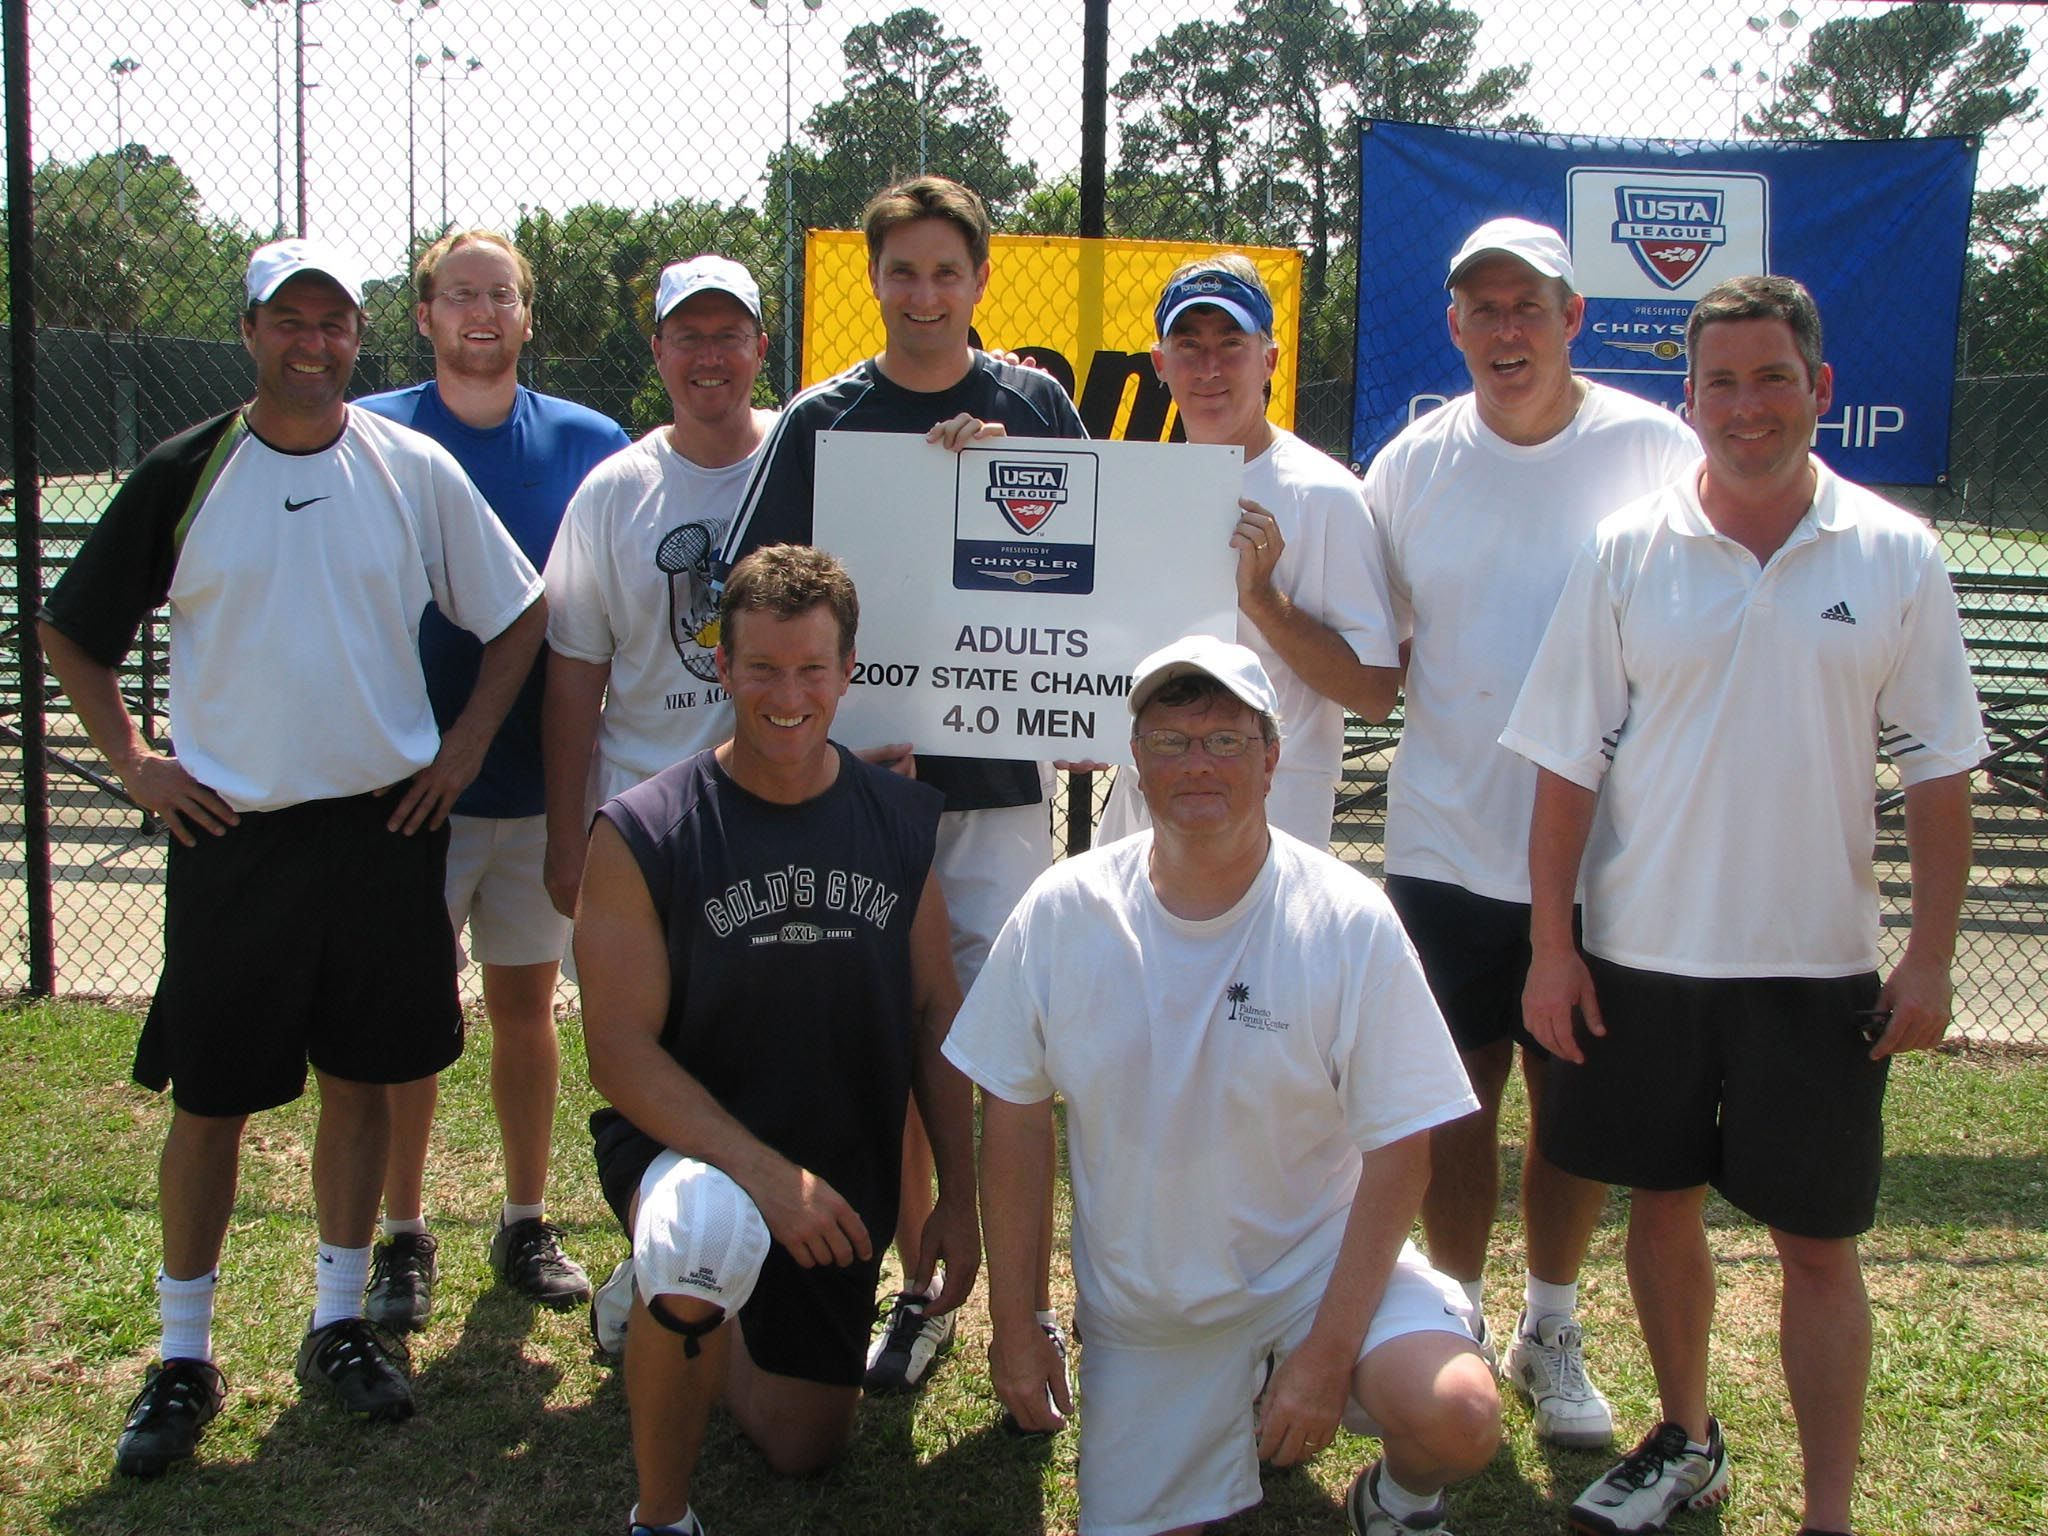 2007 4.0 Adult Men Champs